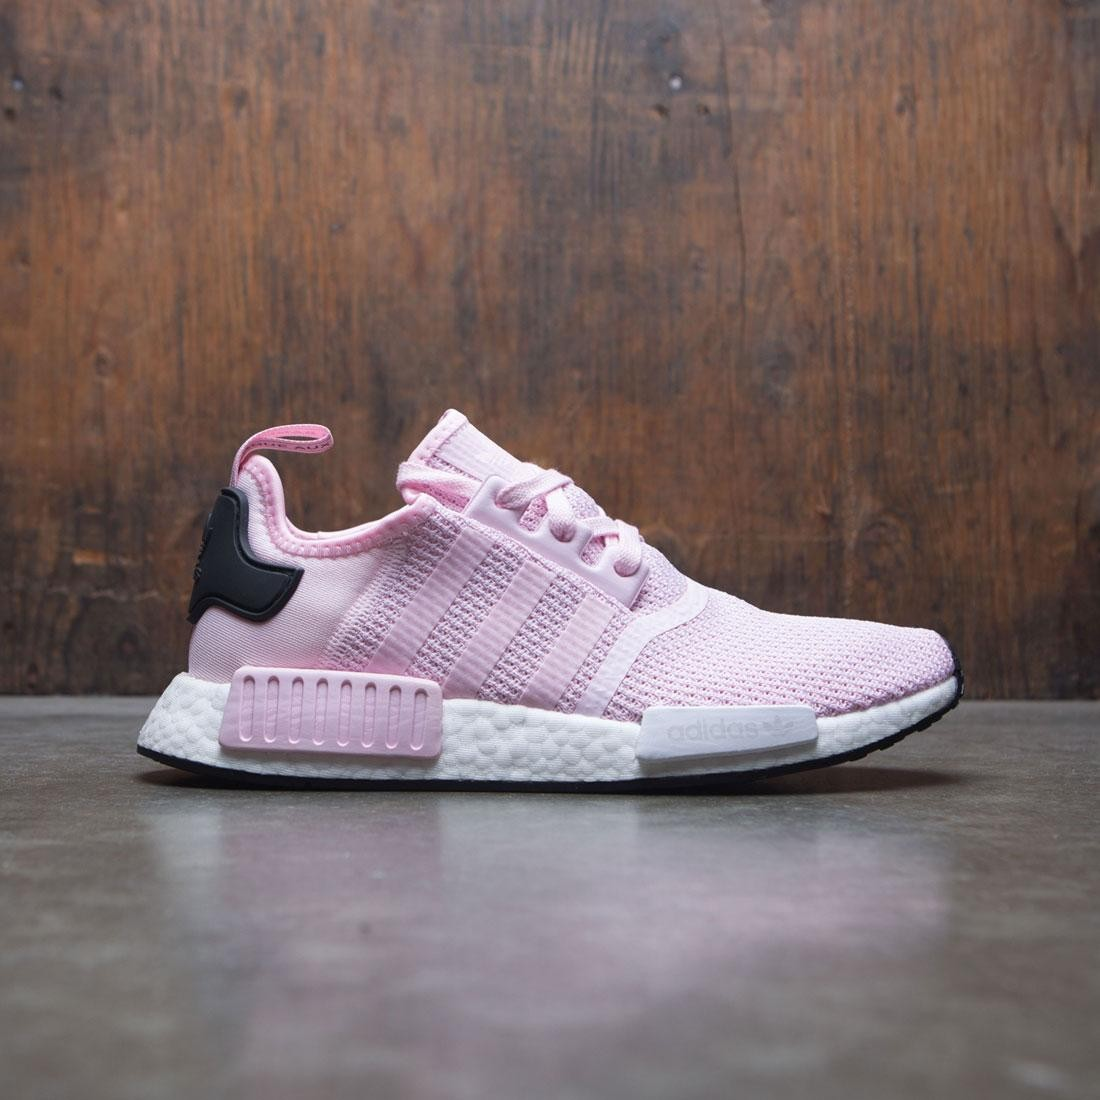 Details about ADIDAS NMD R1 B37648 CLEAR PINK FOOTWEAR WHITE CORE BLACK